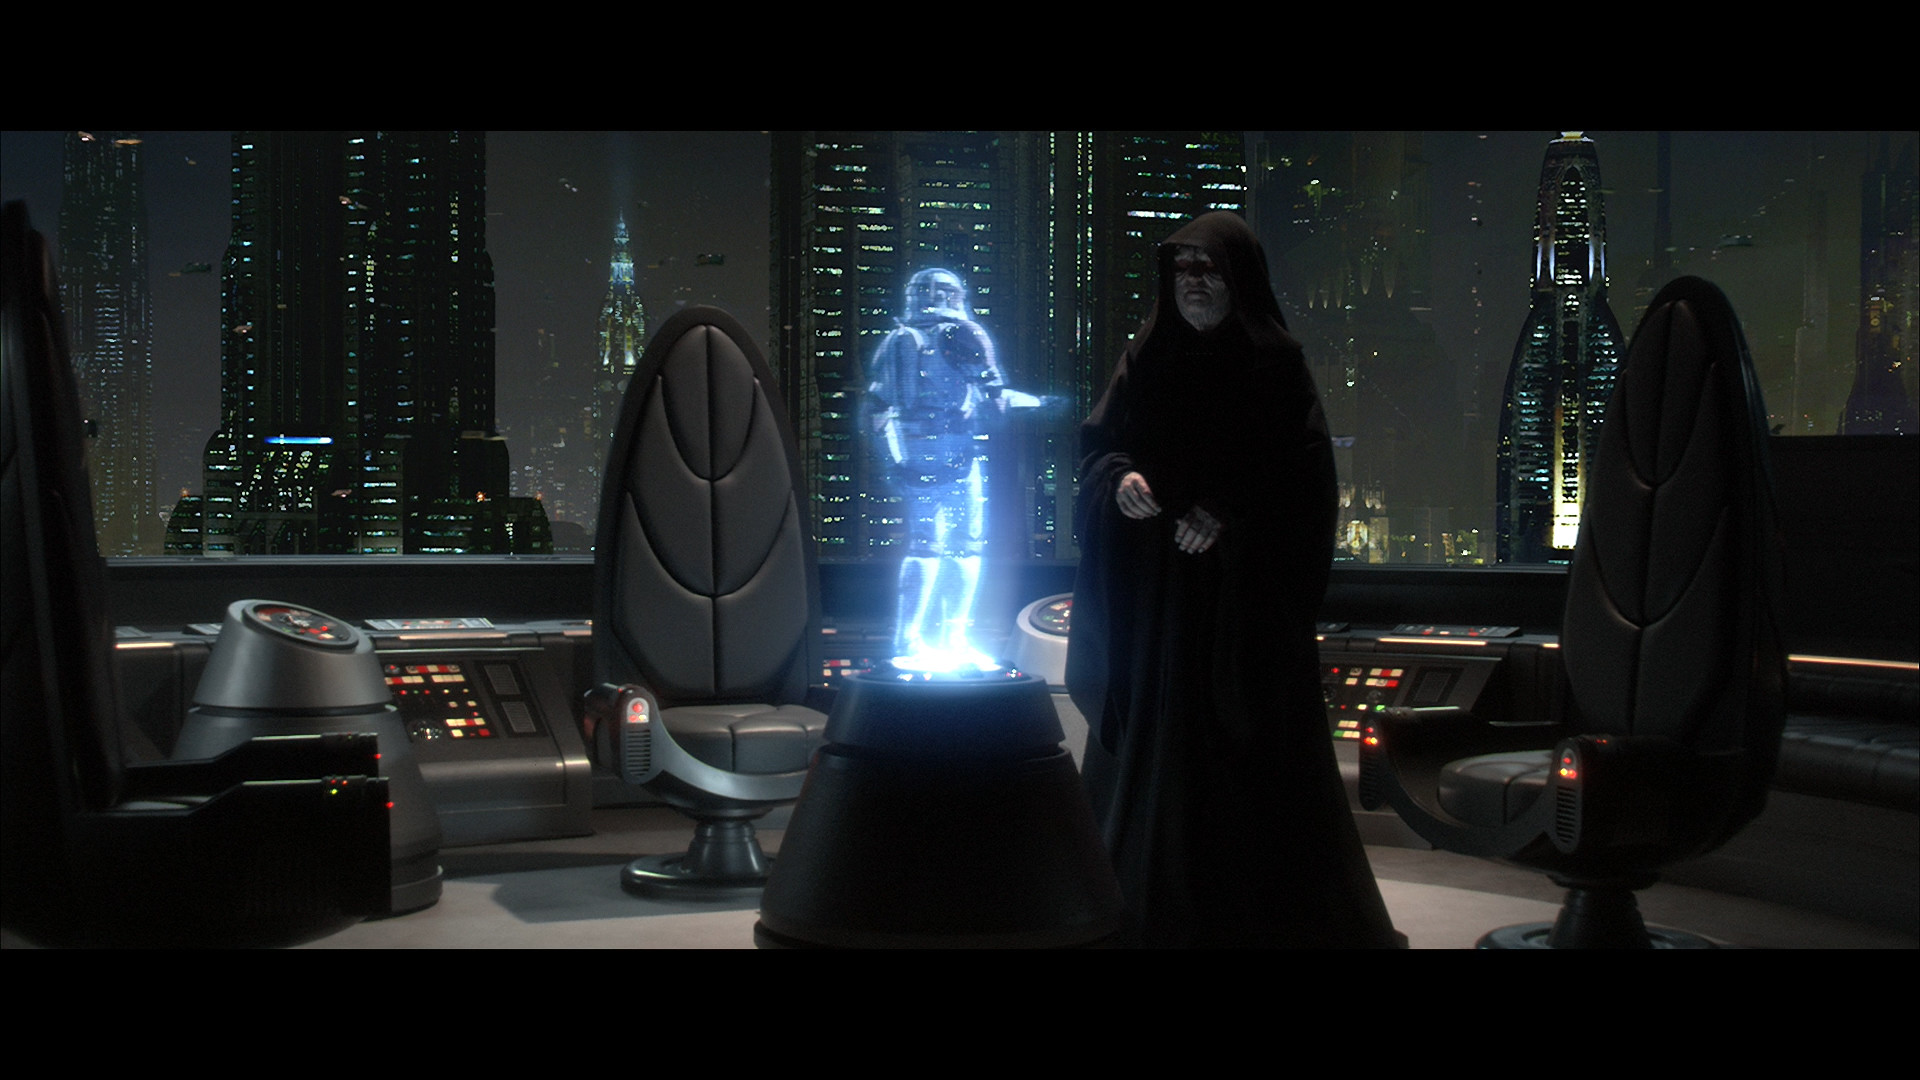 … Darth Sidious talks to a clone trooper in Revenge Of The Sith …